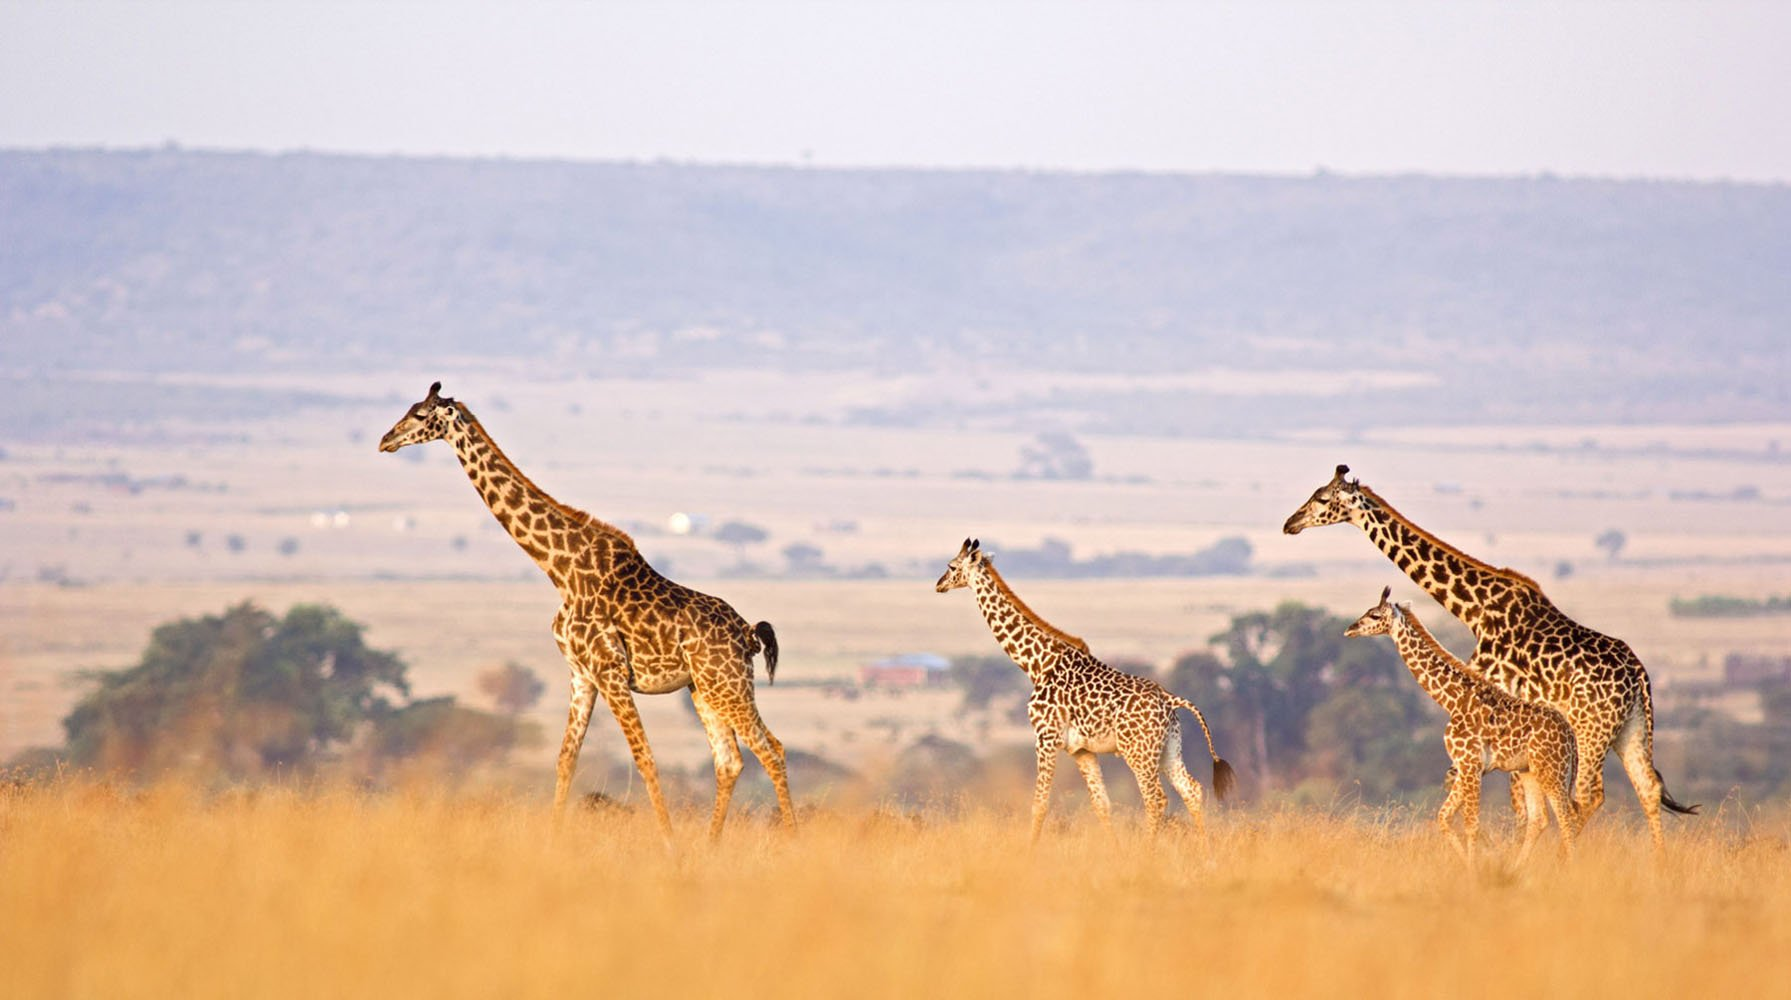 Two adult and two baby giraffes in the African Savanna.